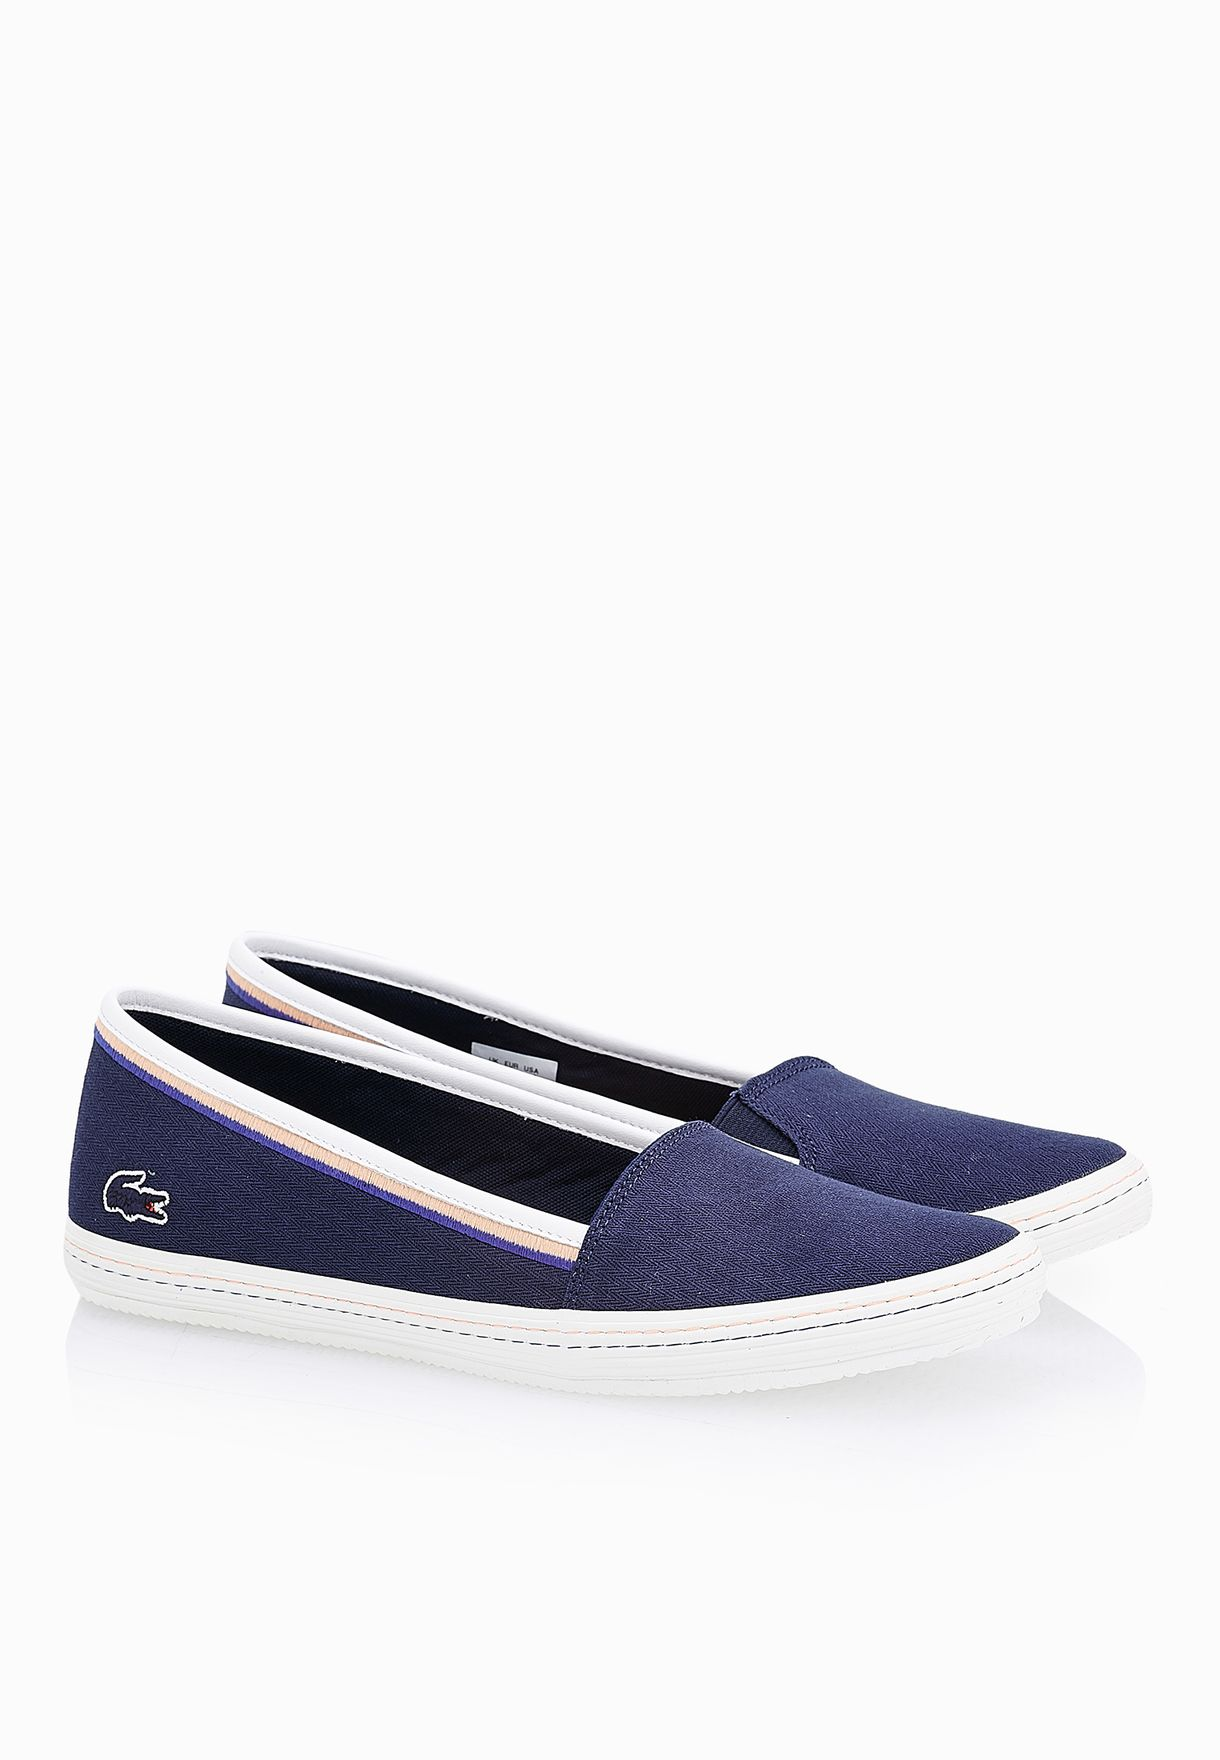 76330b419 Shop Lacoste navy Orane Slip Ons 31SPW0022-003 for Women in ...